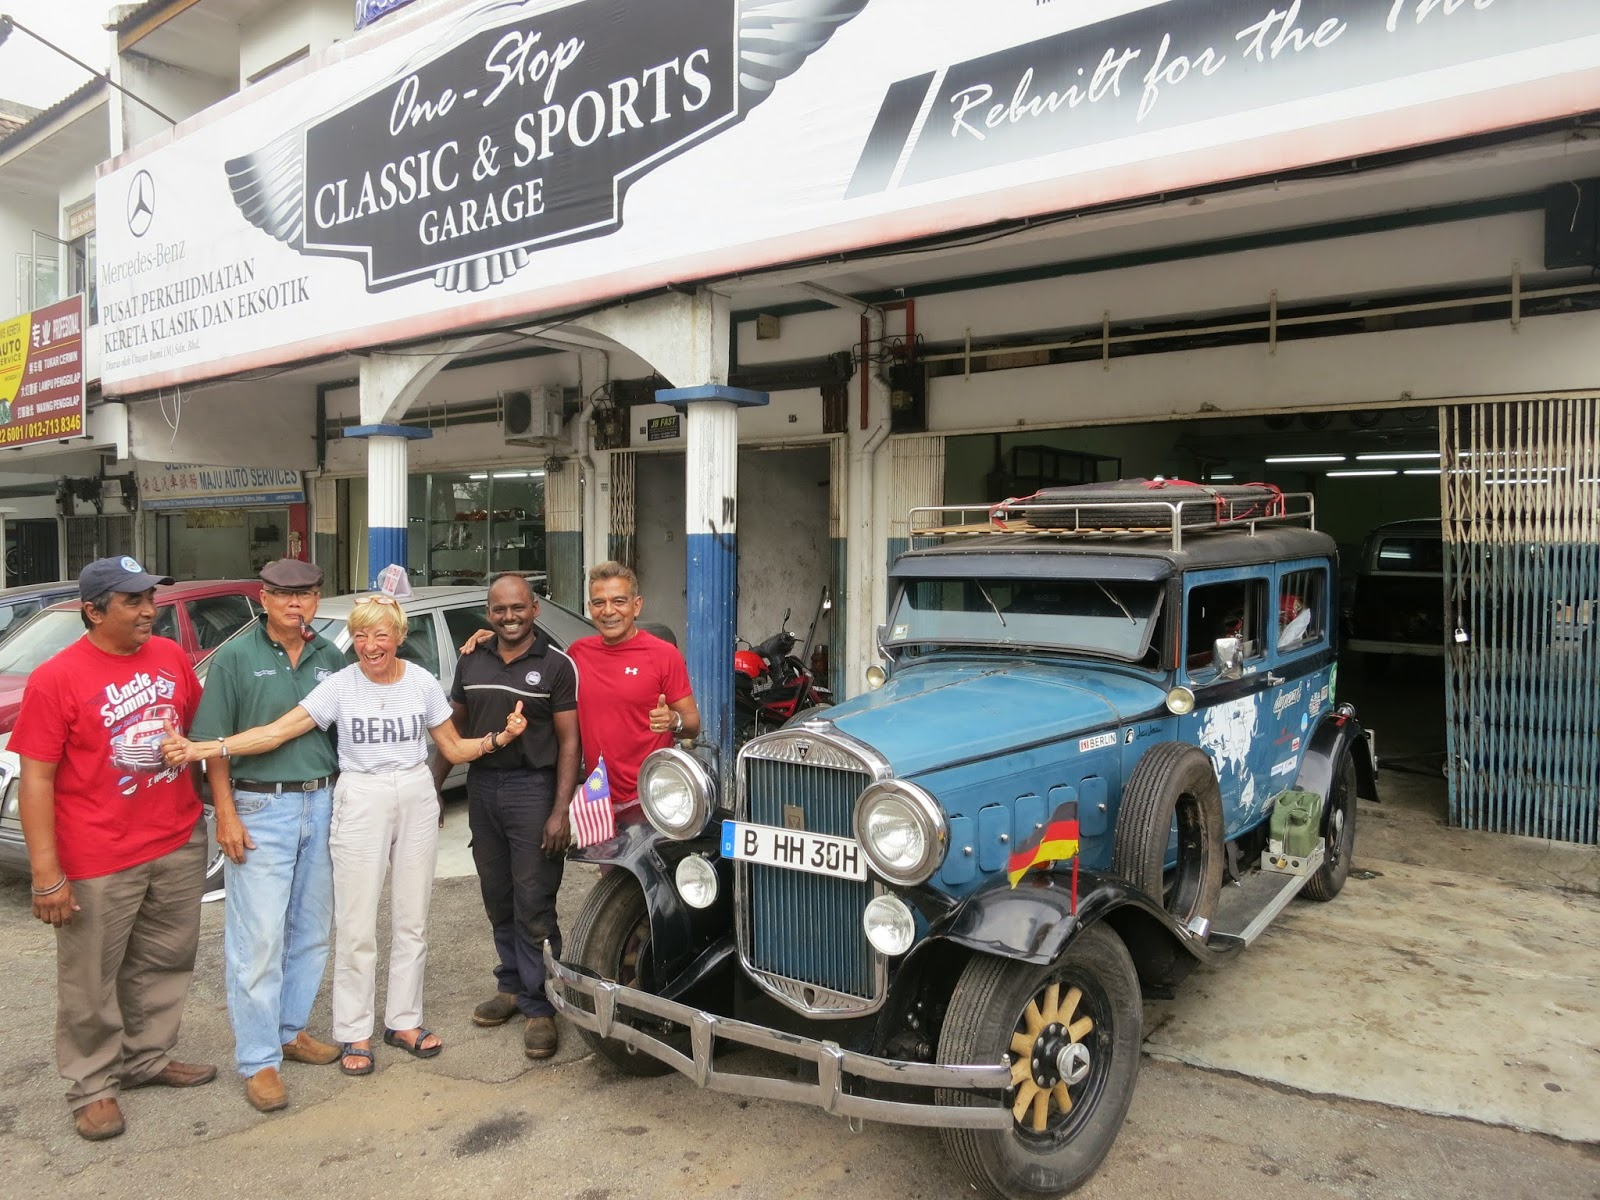 Peggy Loh ~ My Johor Stories: Around the world in a vintage car